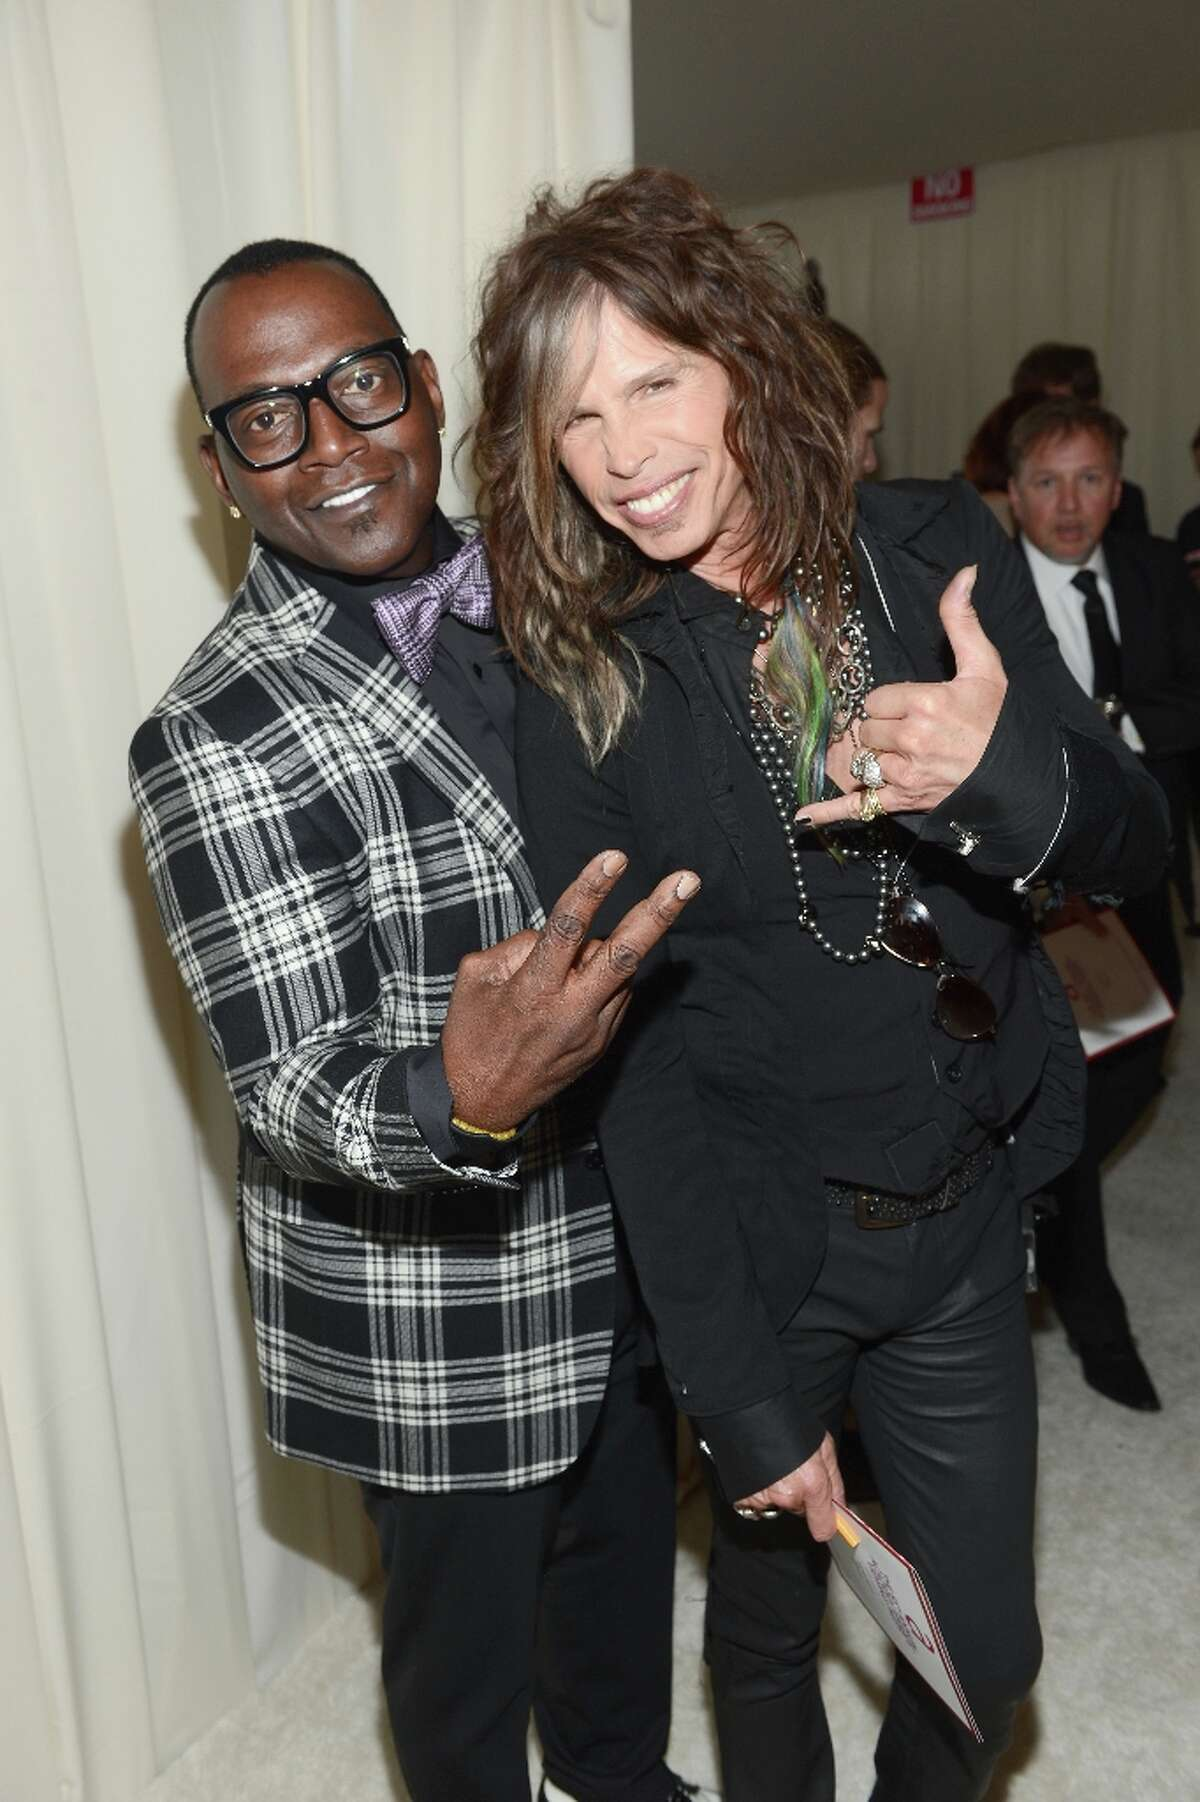 (L-R) TV Personality Randy Jackson and musician Steven Tyler attend the 21st Annual Elton John AIDS Foundation Academy Awards Viewing Party at Pacific Design Center on February 24, 2013 in West Hollywood, California.